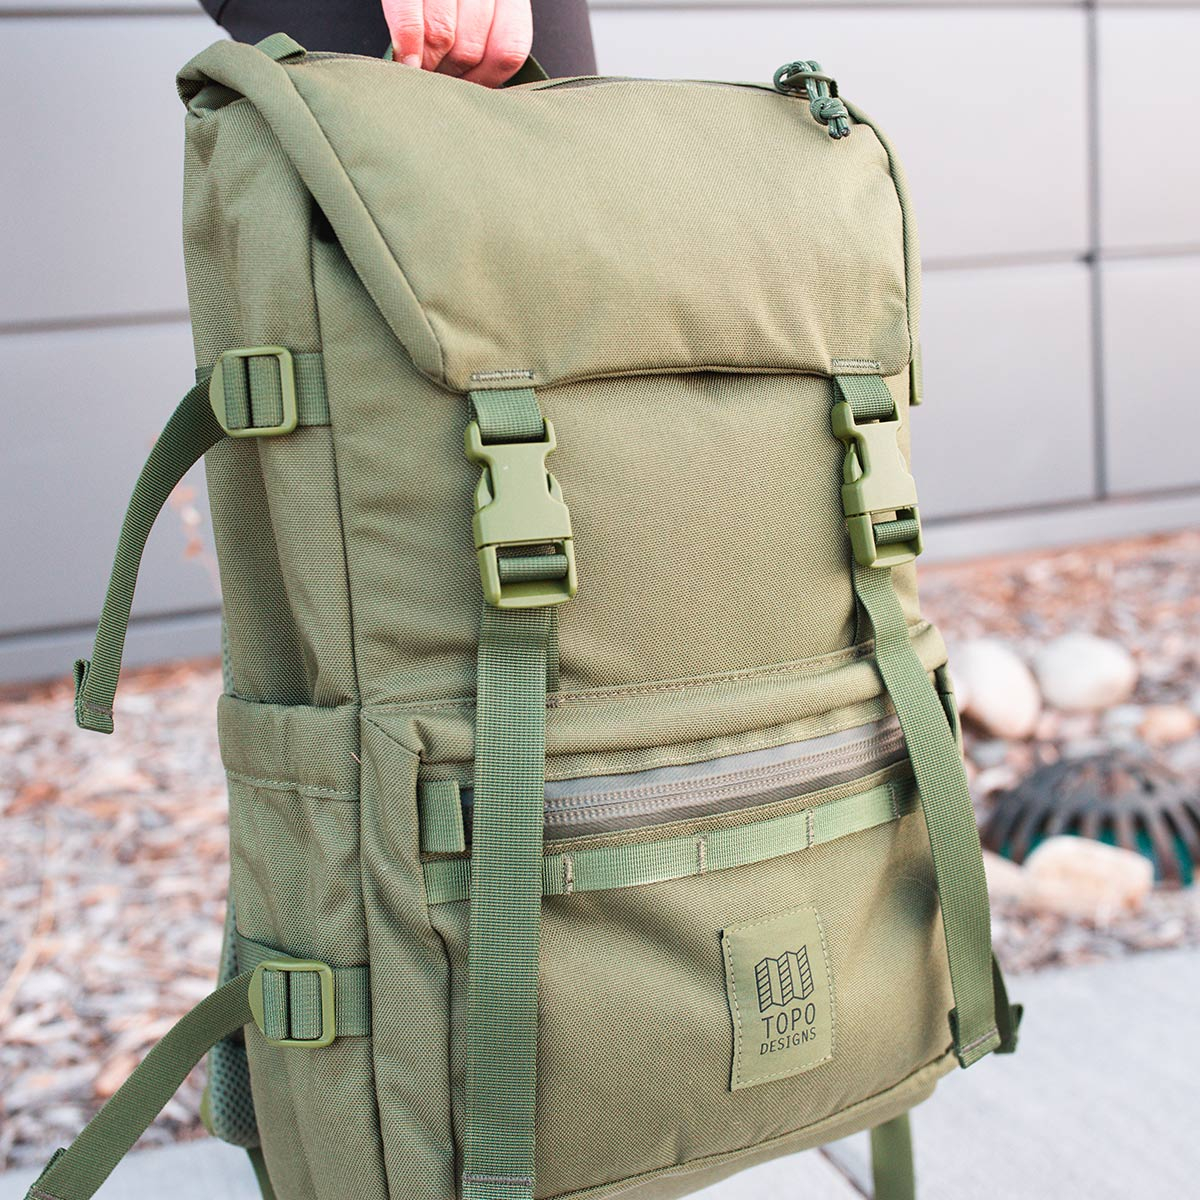 Topo Designs Rover Pack Tech Olive, durable, lightweight and water-resistant pack for daily use